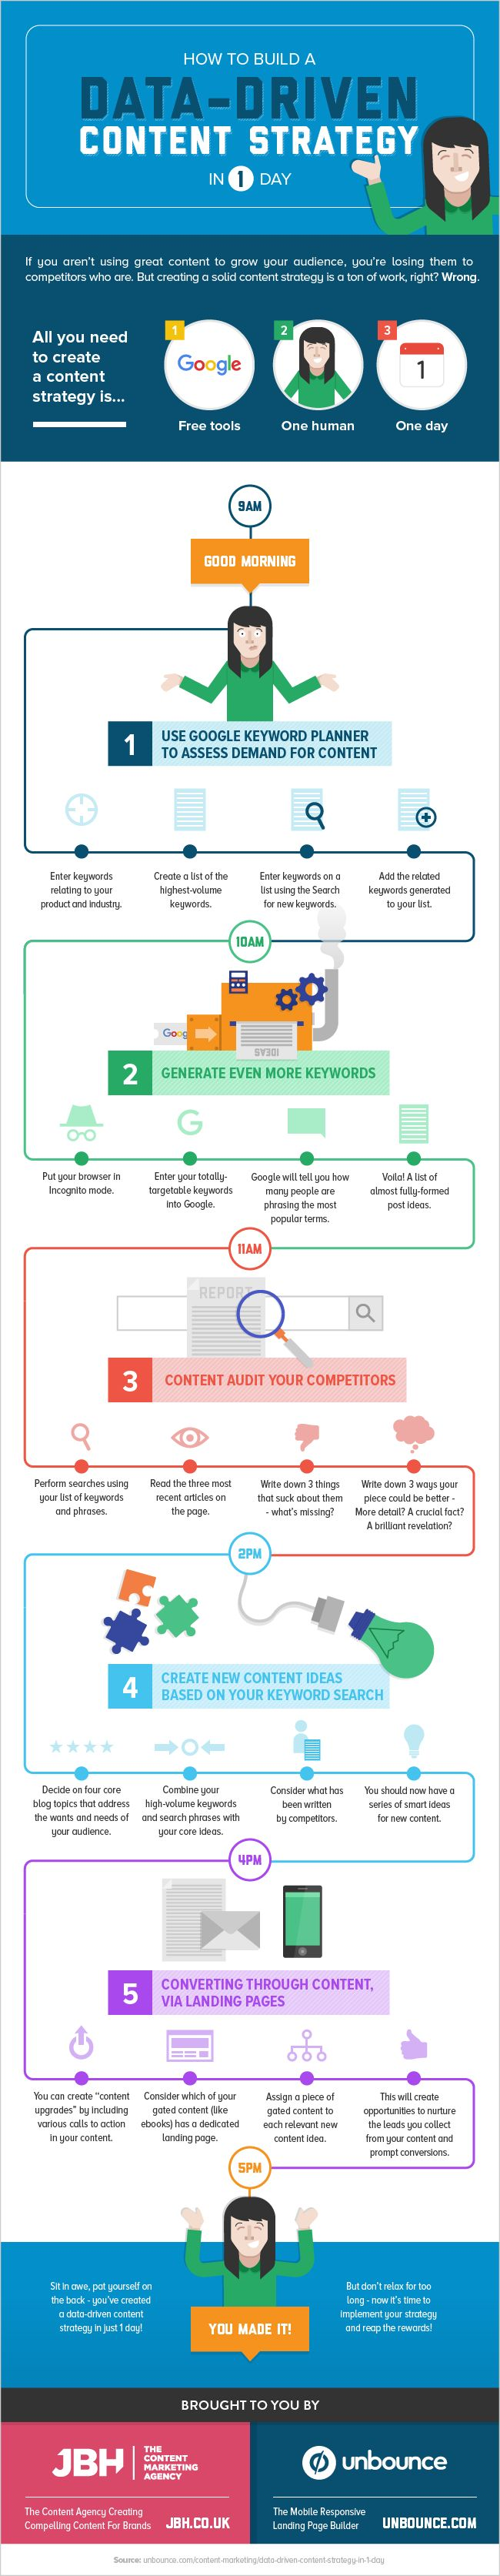 Create a Data-Driven Content Strategy in 1 Day [INFOGRAPHIC] http://unbounce.stfi.re/content-marketing/create-a-data-driven-content-strategy-in-1-day-infographic/?sf=jvbkdnk